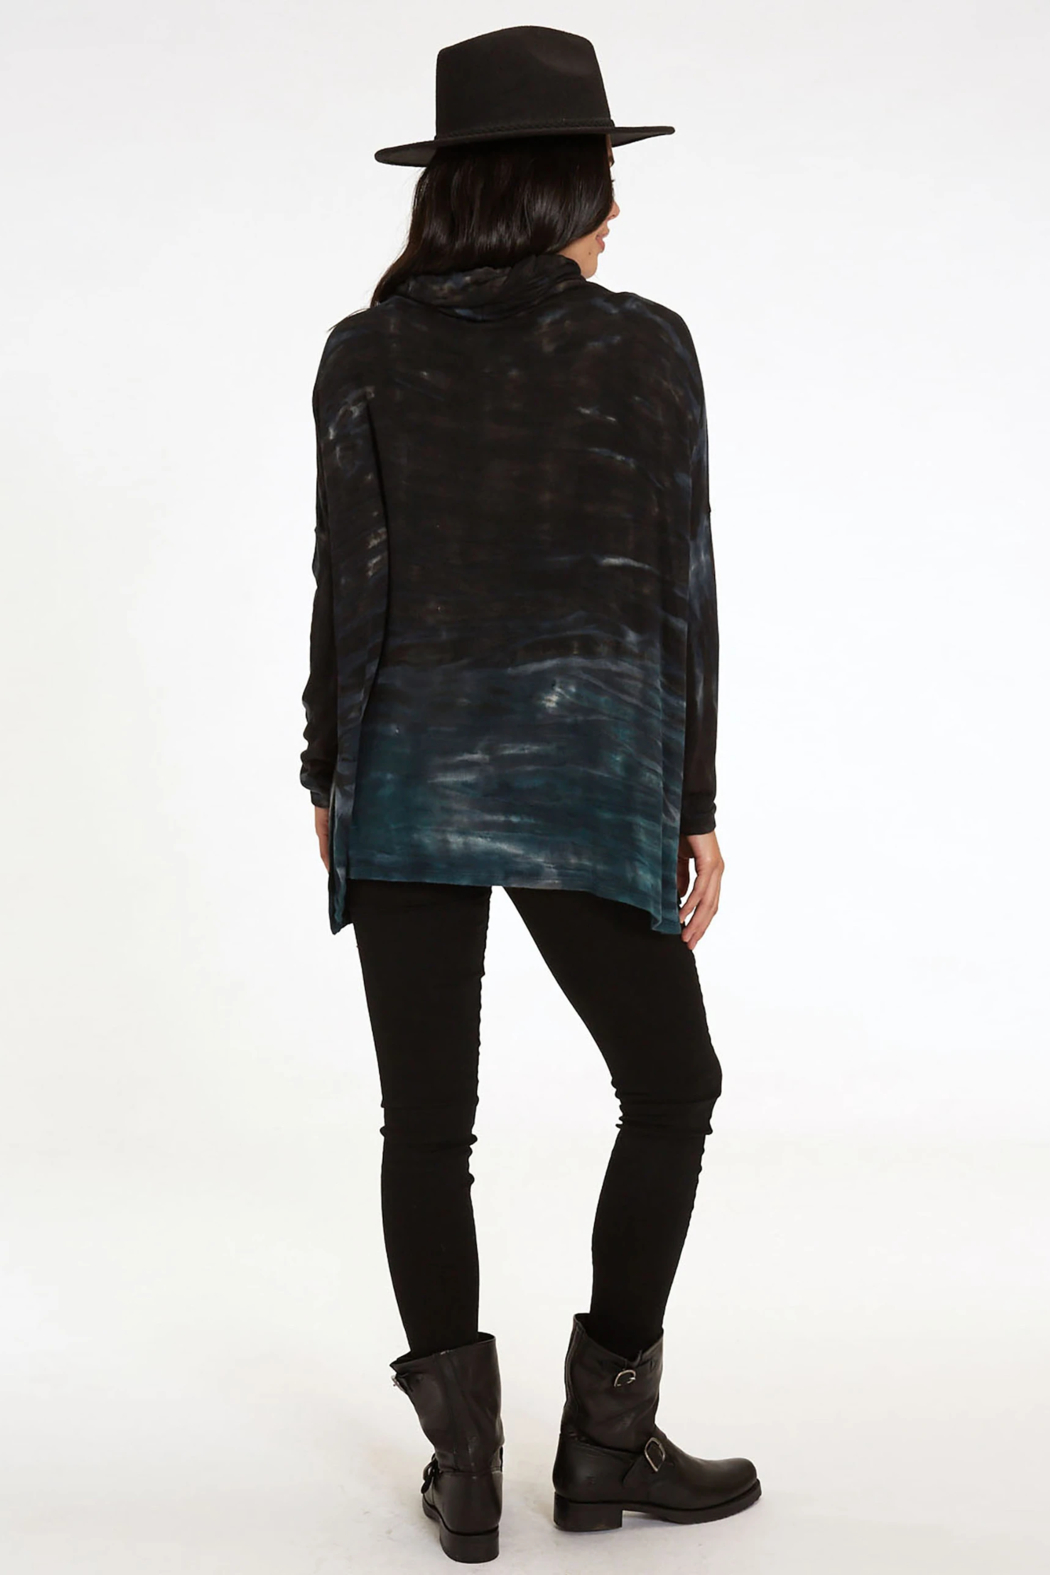 RIVER AND SKY Long Nights Oversized Ombre Poncho Sweater - Back Cropped Image